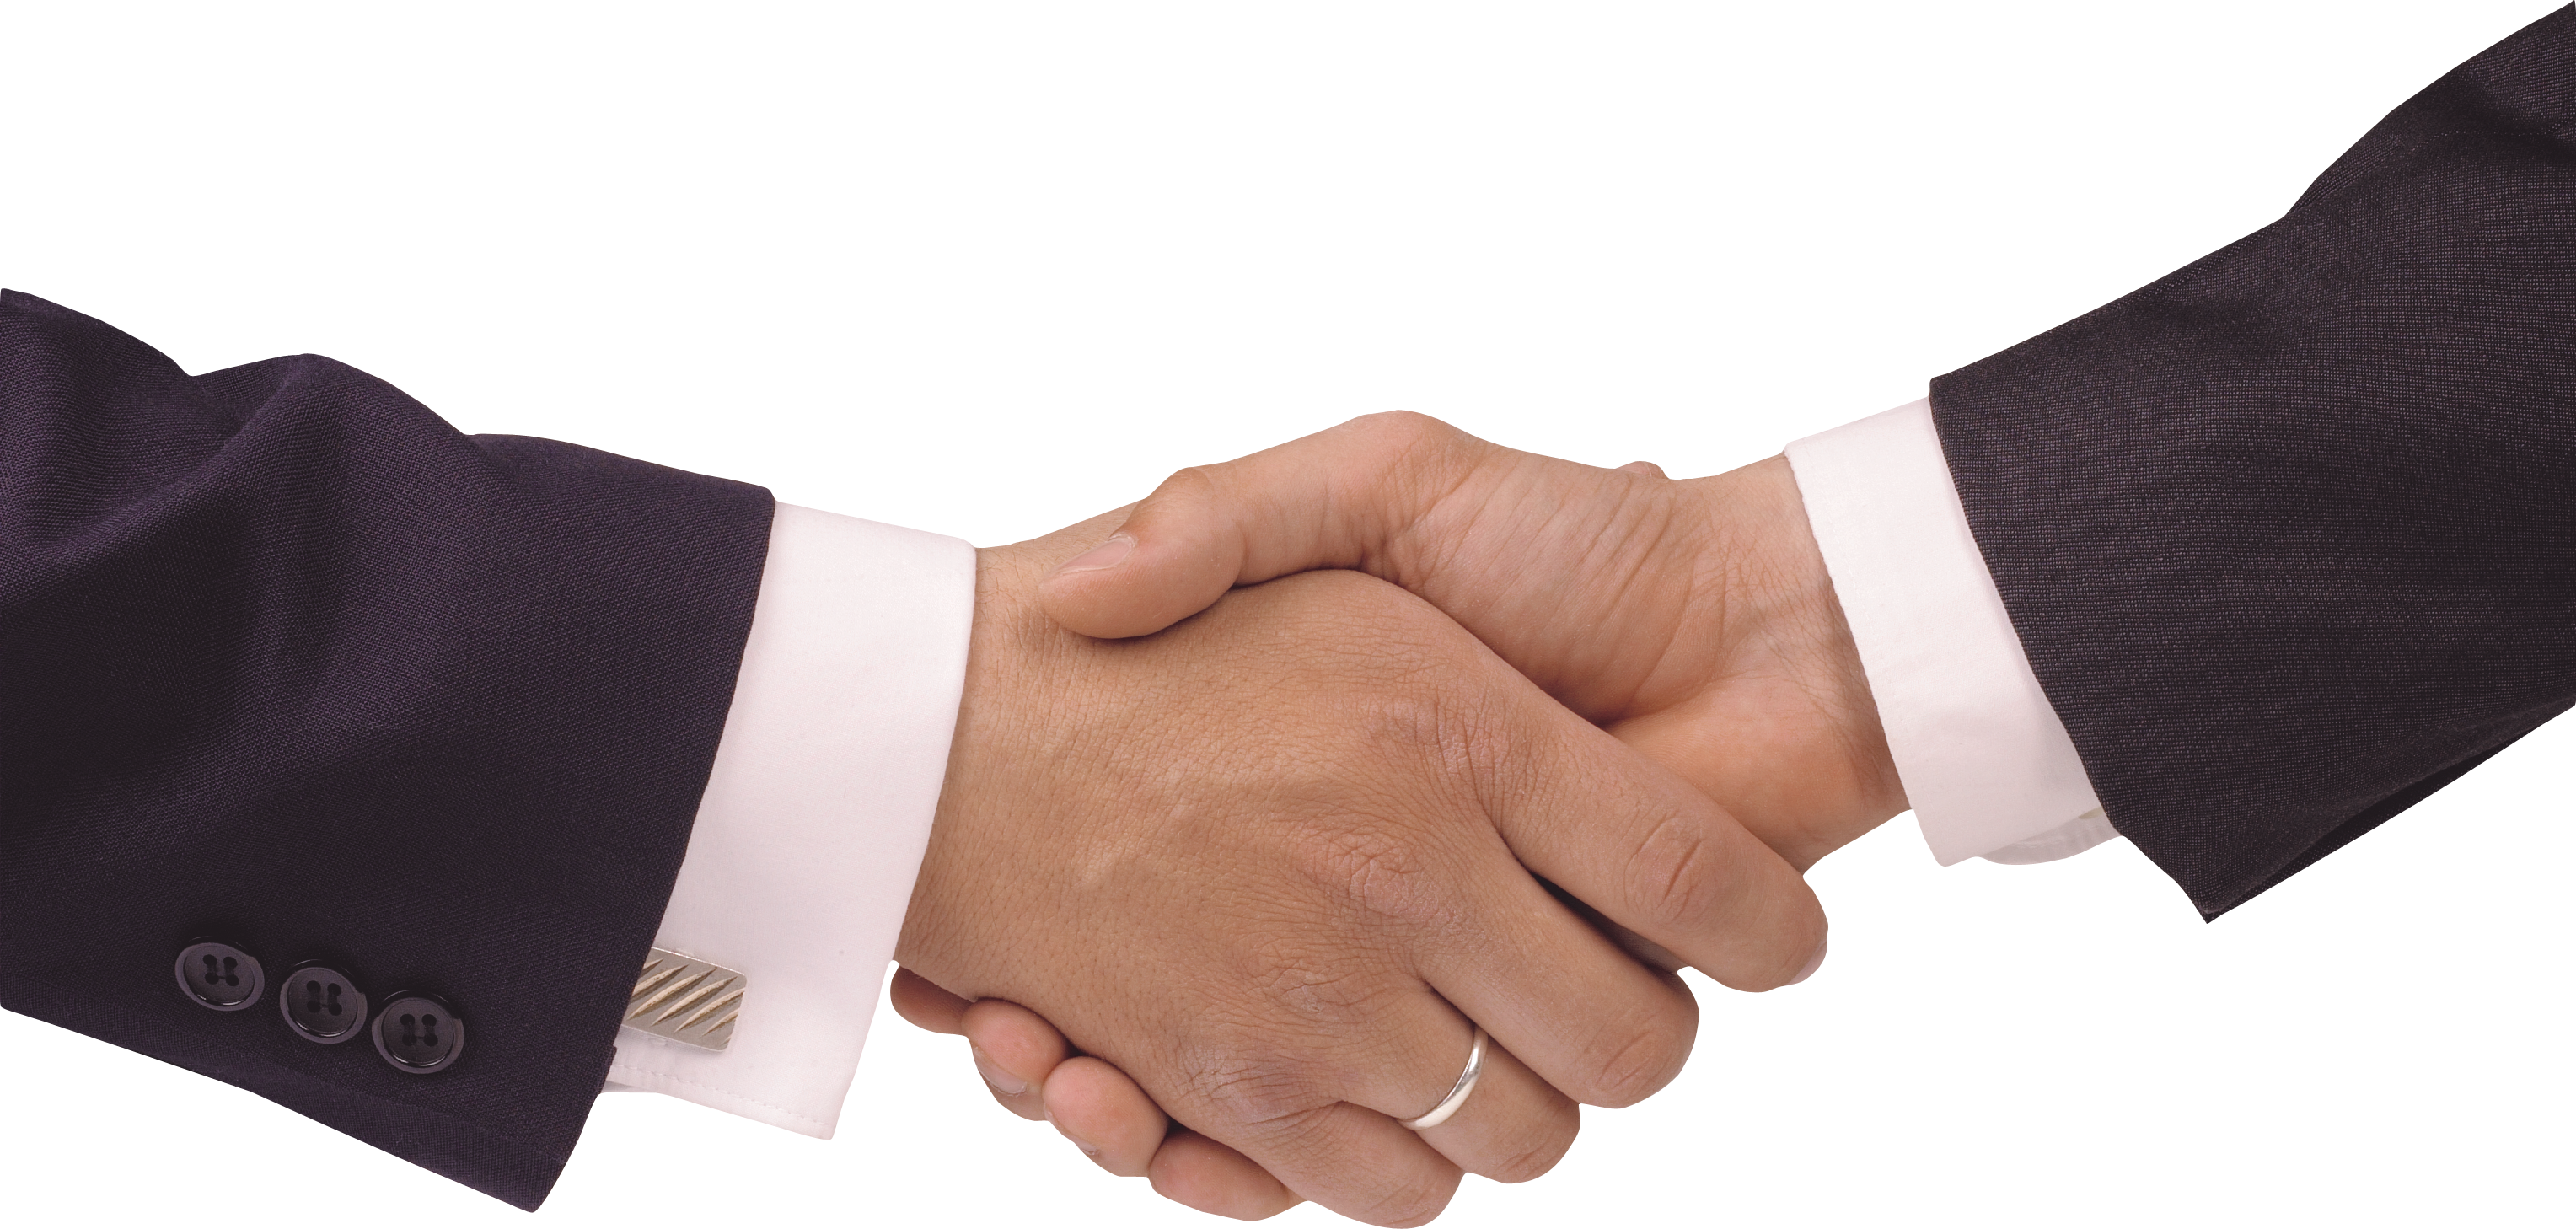 Png hd transparent images. Handshake clipart day